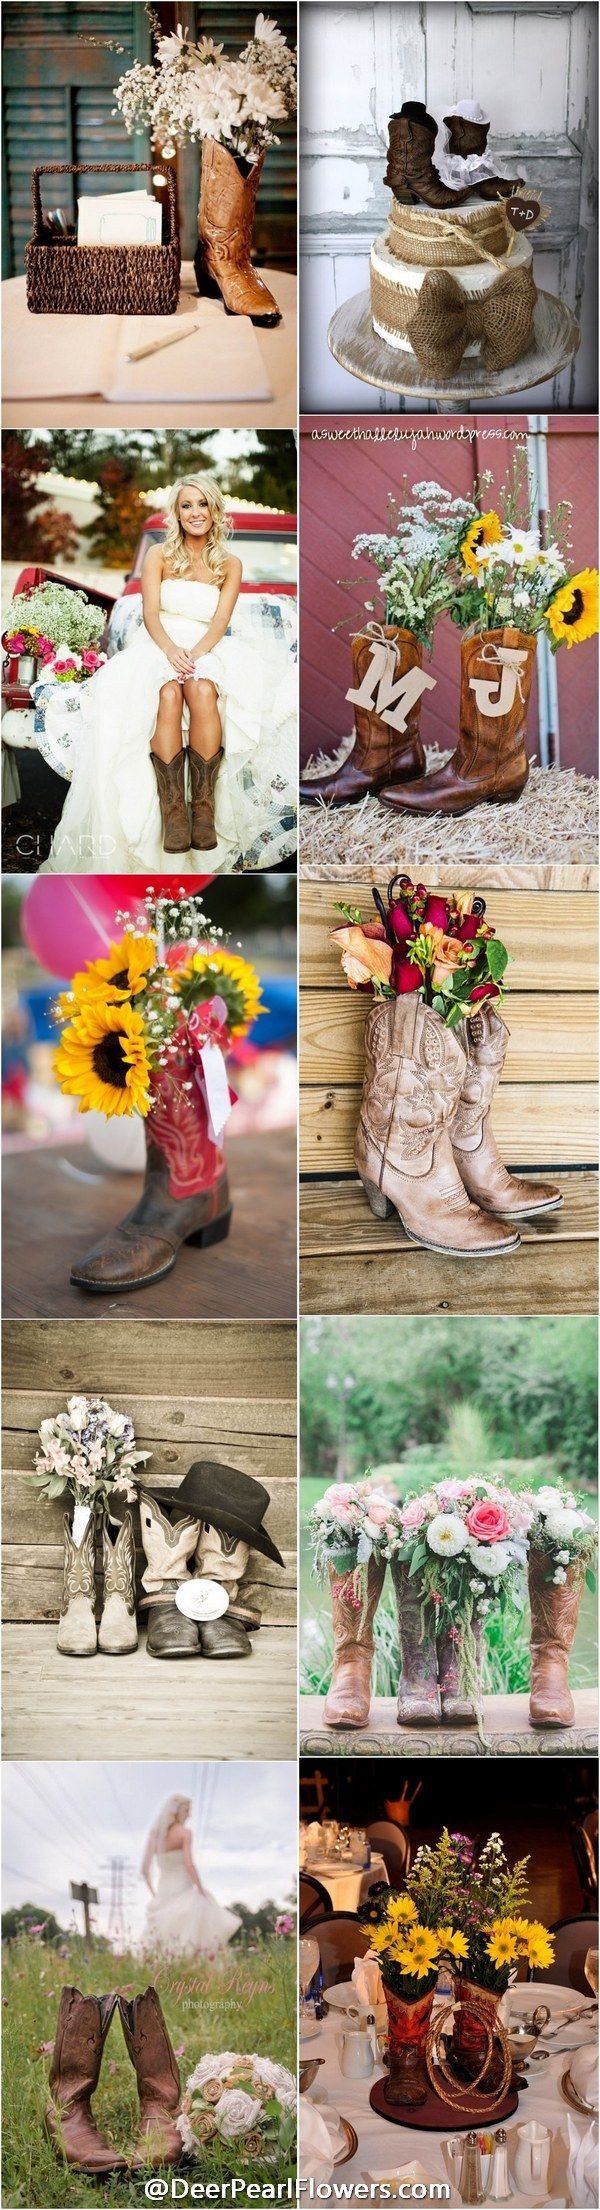 40 Rustic Country Cow Boots Fall Wedding Ideas